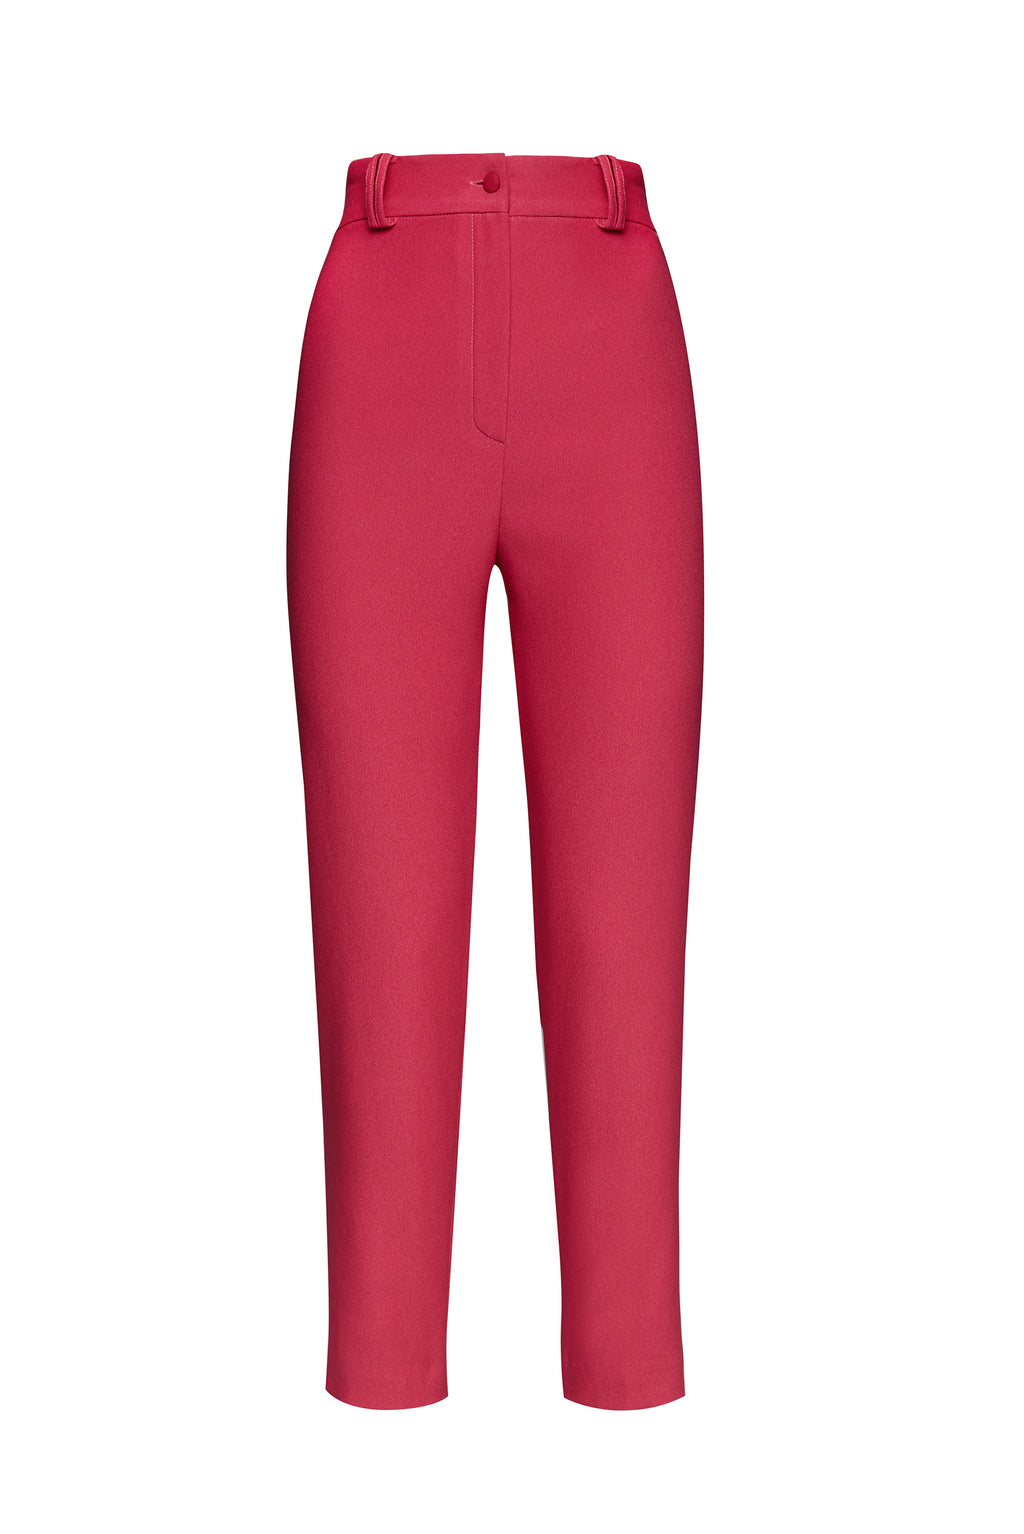 The Fucshia LouLou Pants